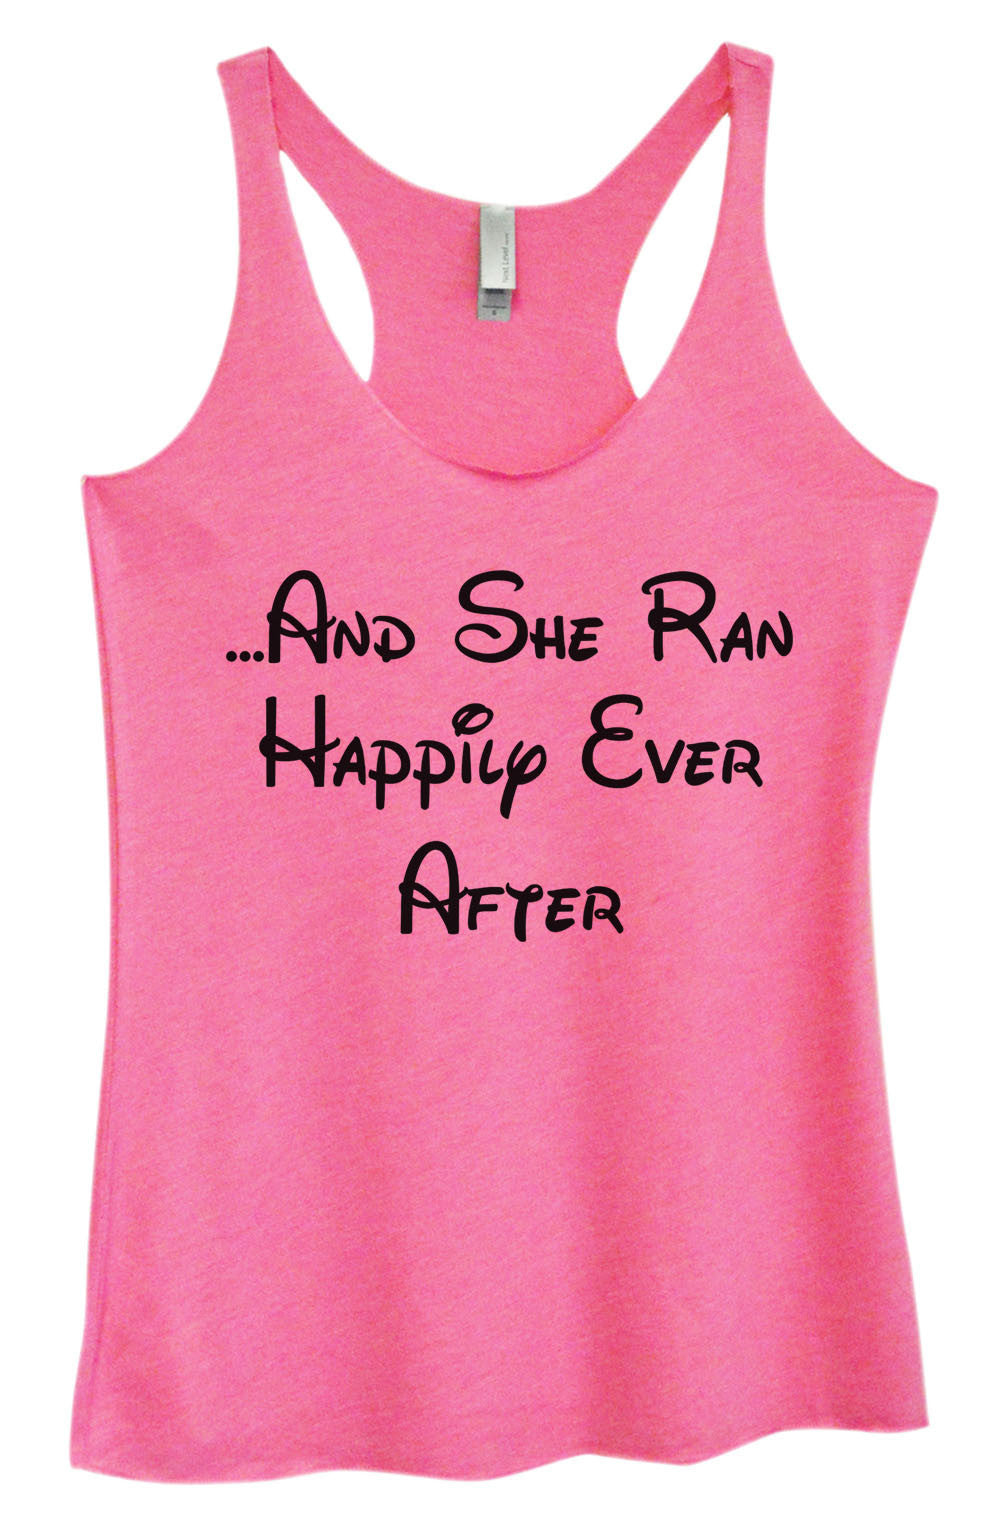 Womens Fashion Triblend Tank Top - ...And She Ran Happily Ever After - Tri-954 - Funny Shirts Tank Tops Burnouts and Triblends  - 4